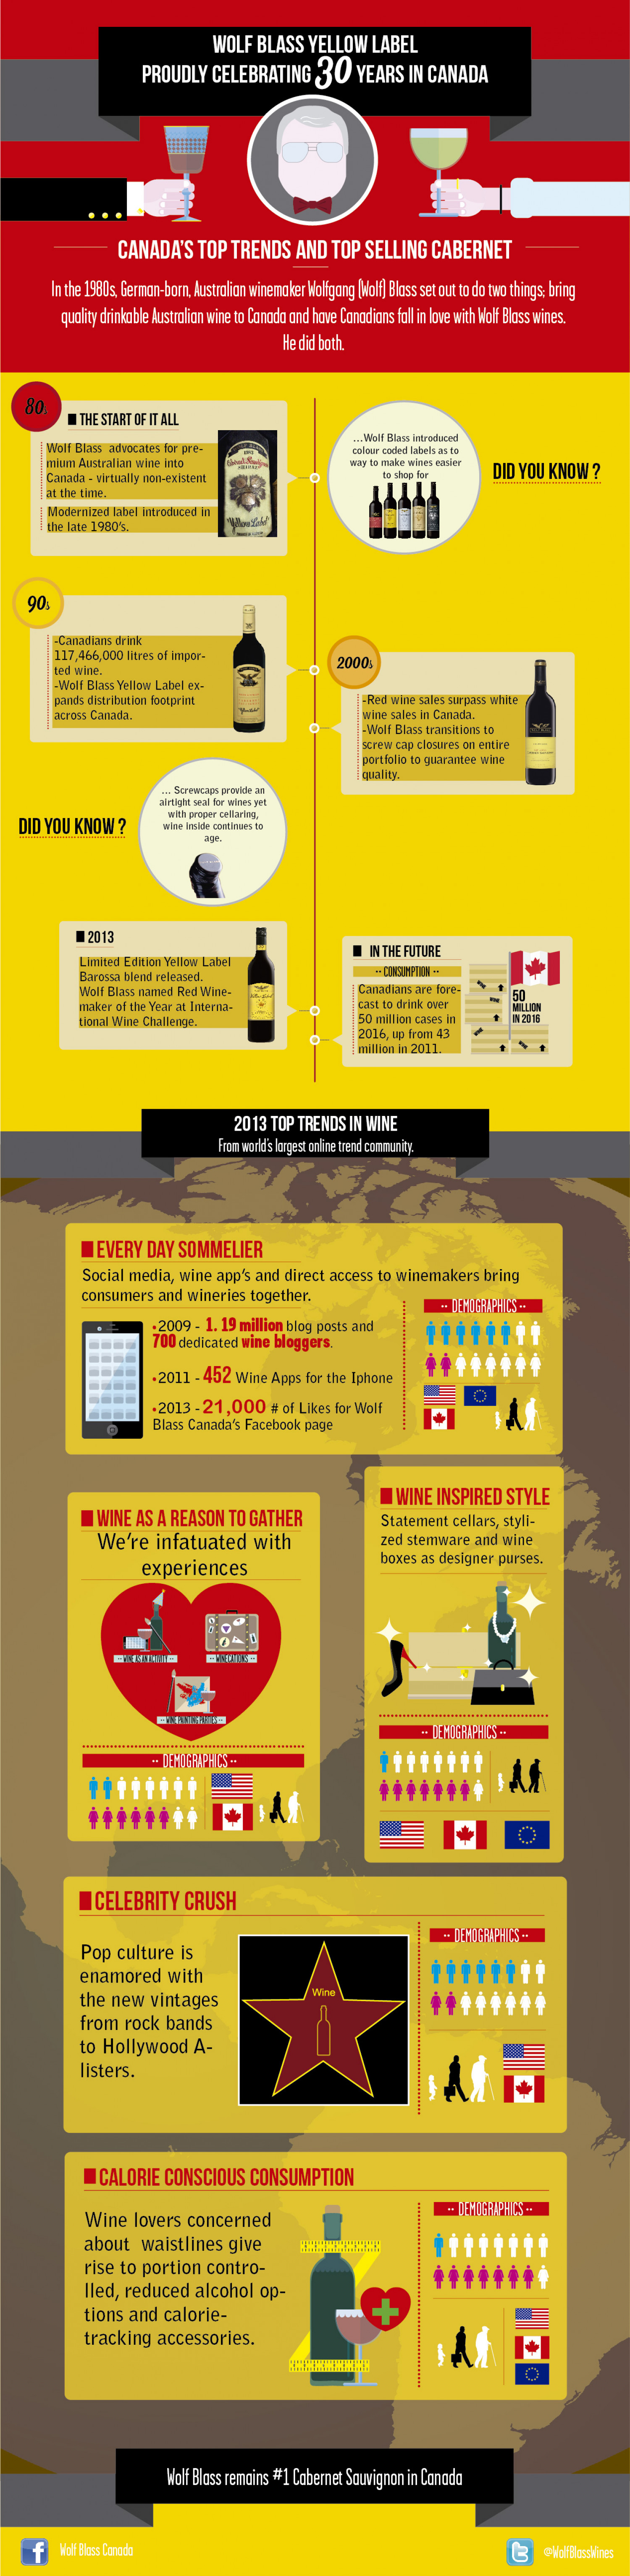 Wolf Blass Yellow Label Proudly Celebrating 30 Years in Canada  Infographic